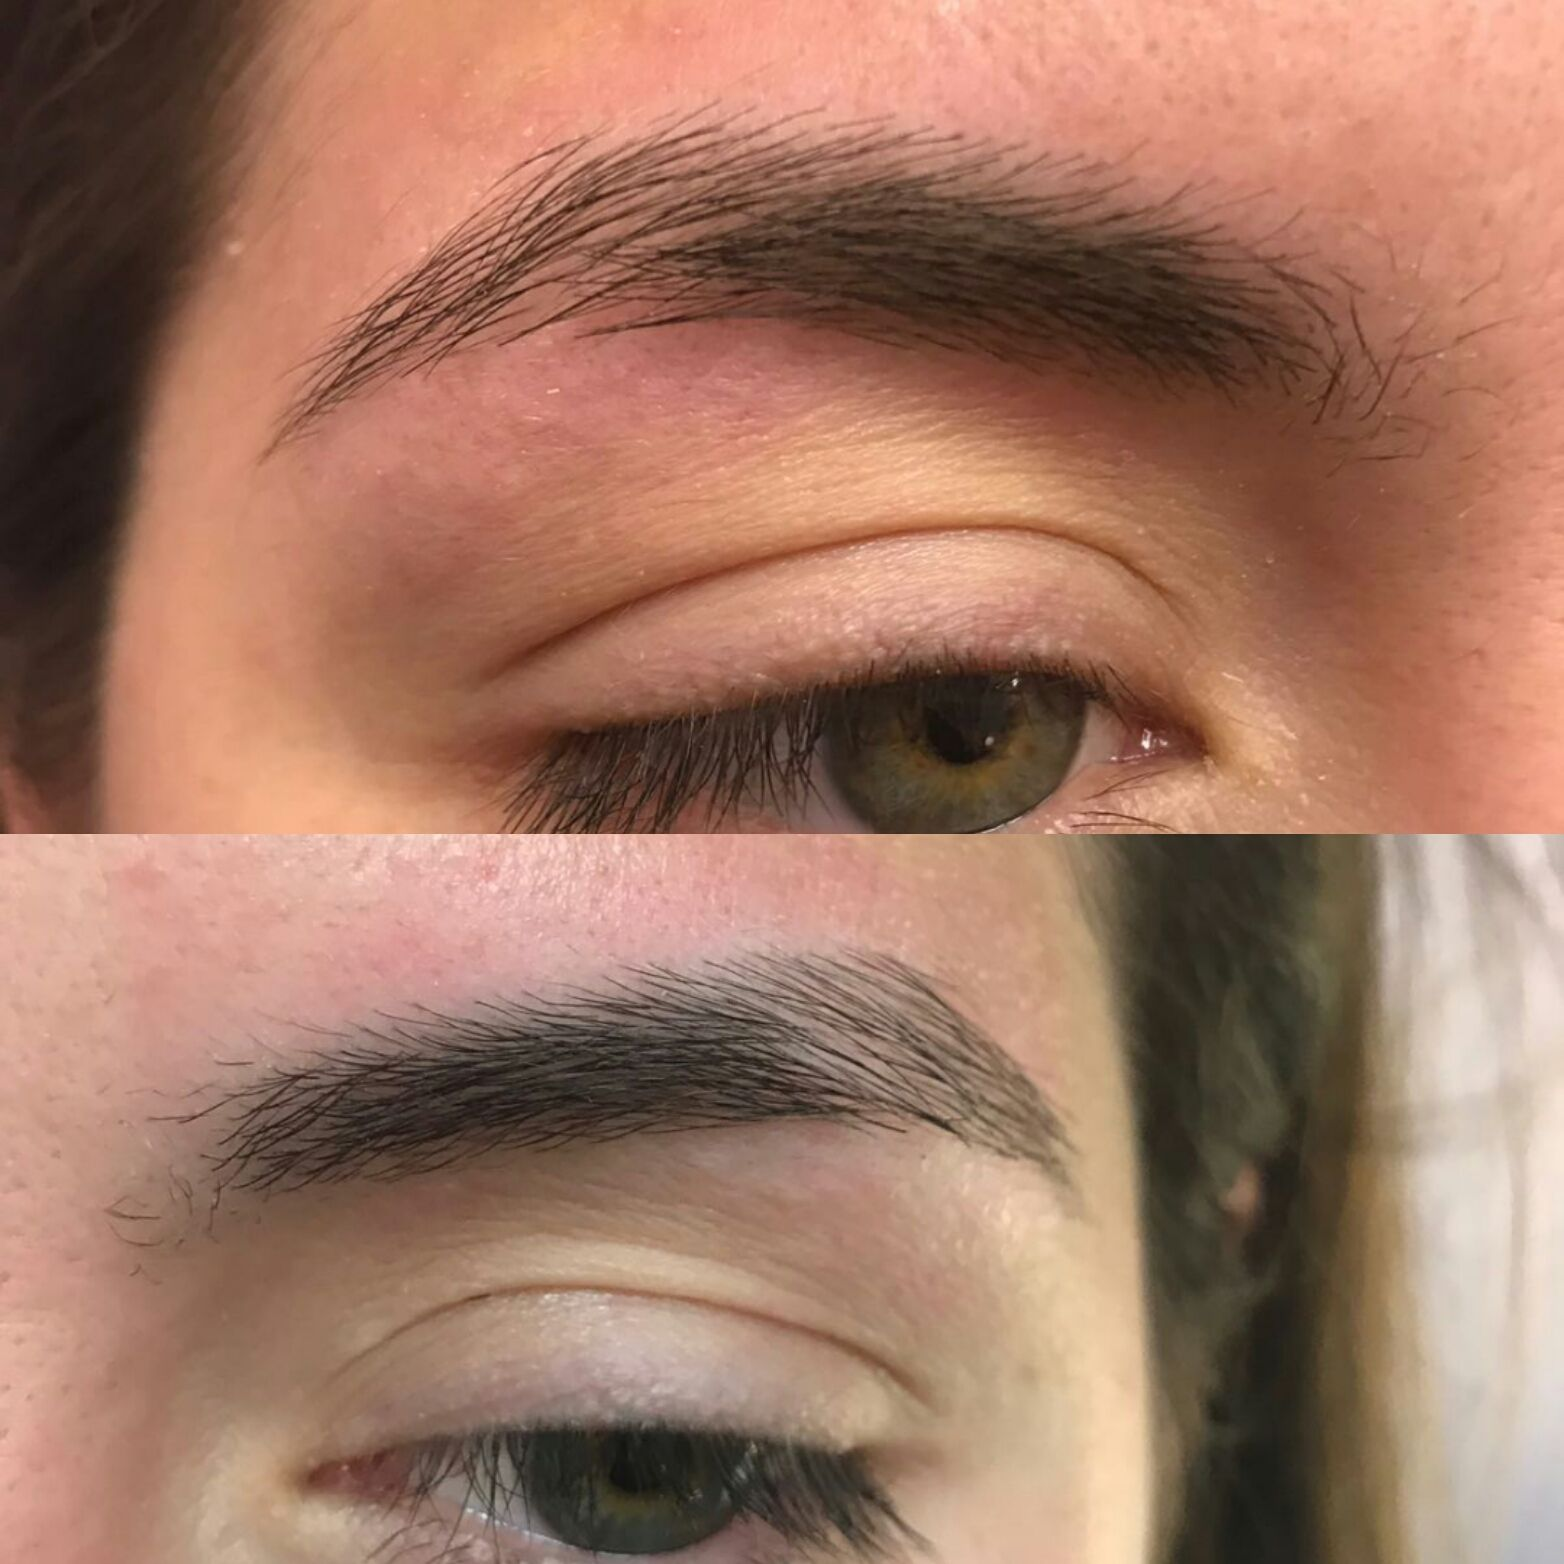 Henna Tattoo For Eyebrows: Eyebrows Makes A Woman Perfect Services : Threading, Henna